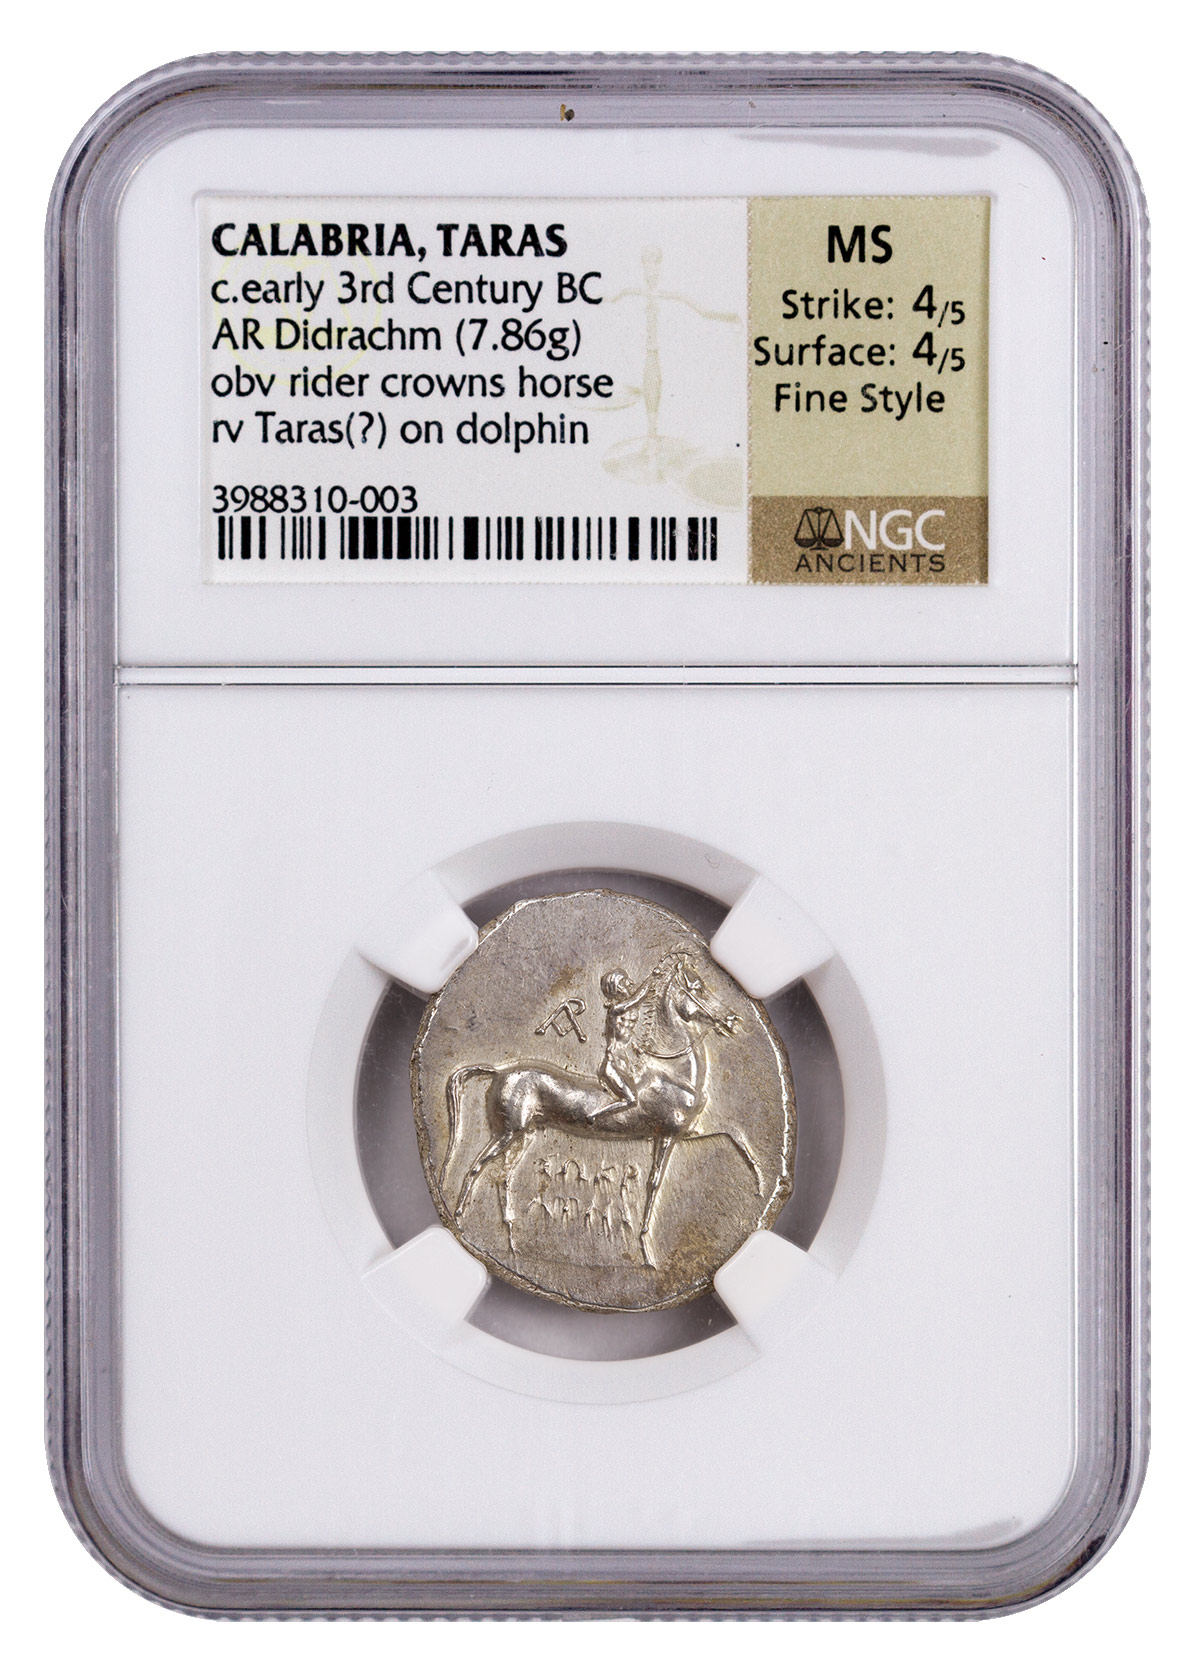 Calabria, Taras Silver Didrachm (c.Early 3rd Century BC) - obv. Rider Crowns Horse/rv. Taras on Dolphin NGC MS (Strike: 4/5, Surface: 4/5 - Fine Style)